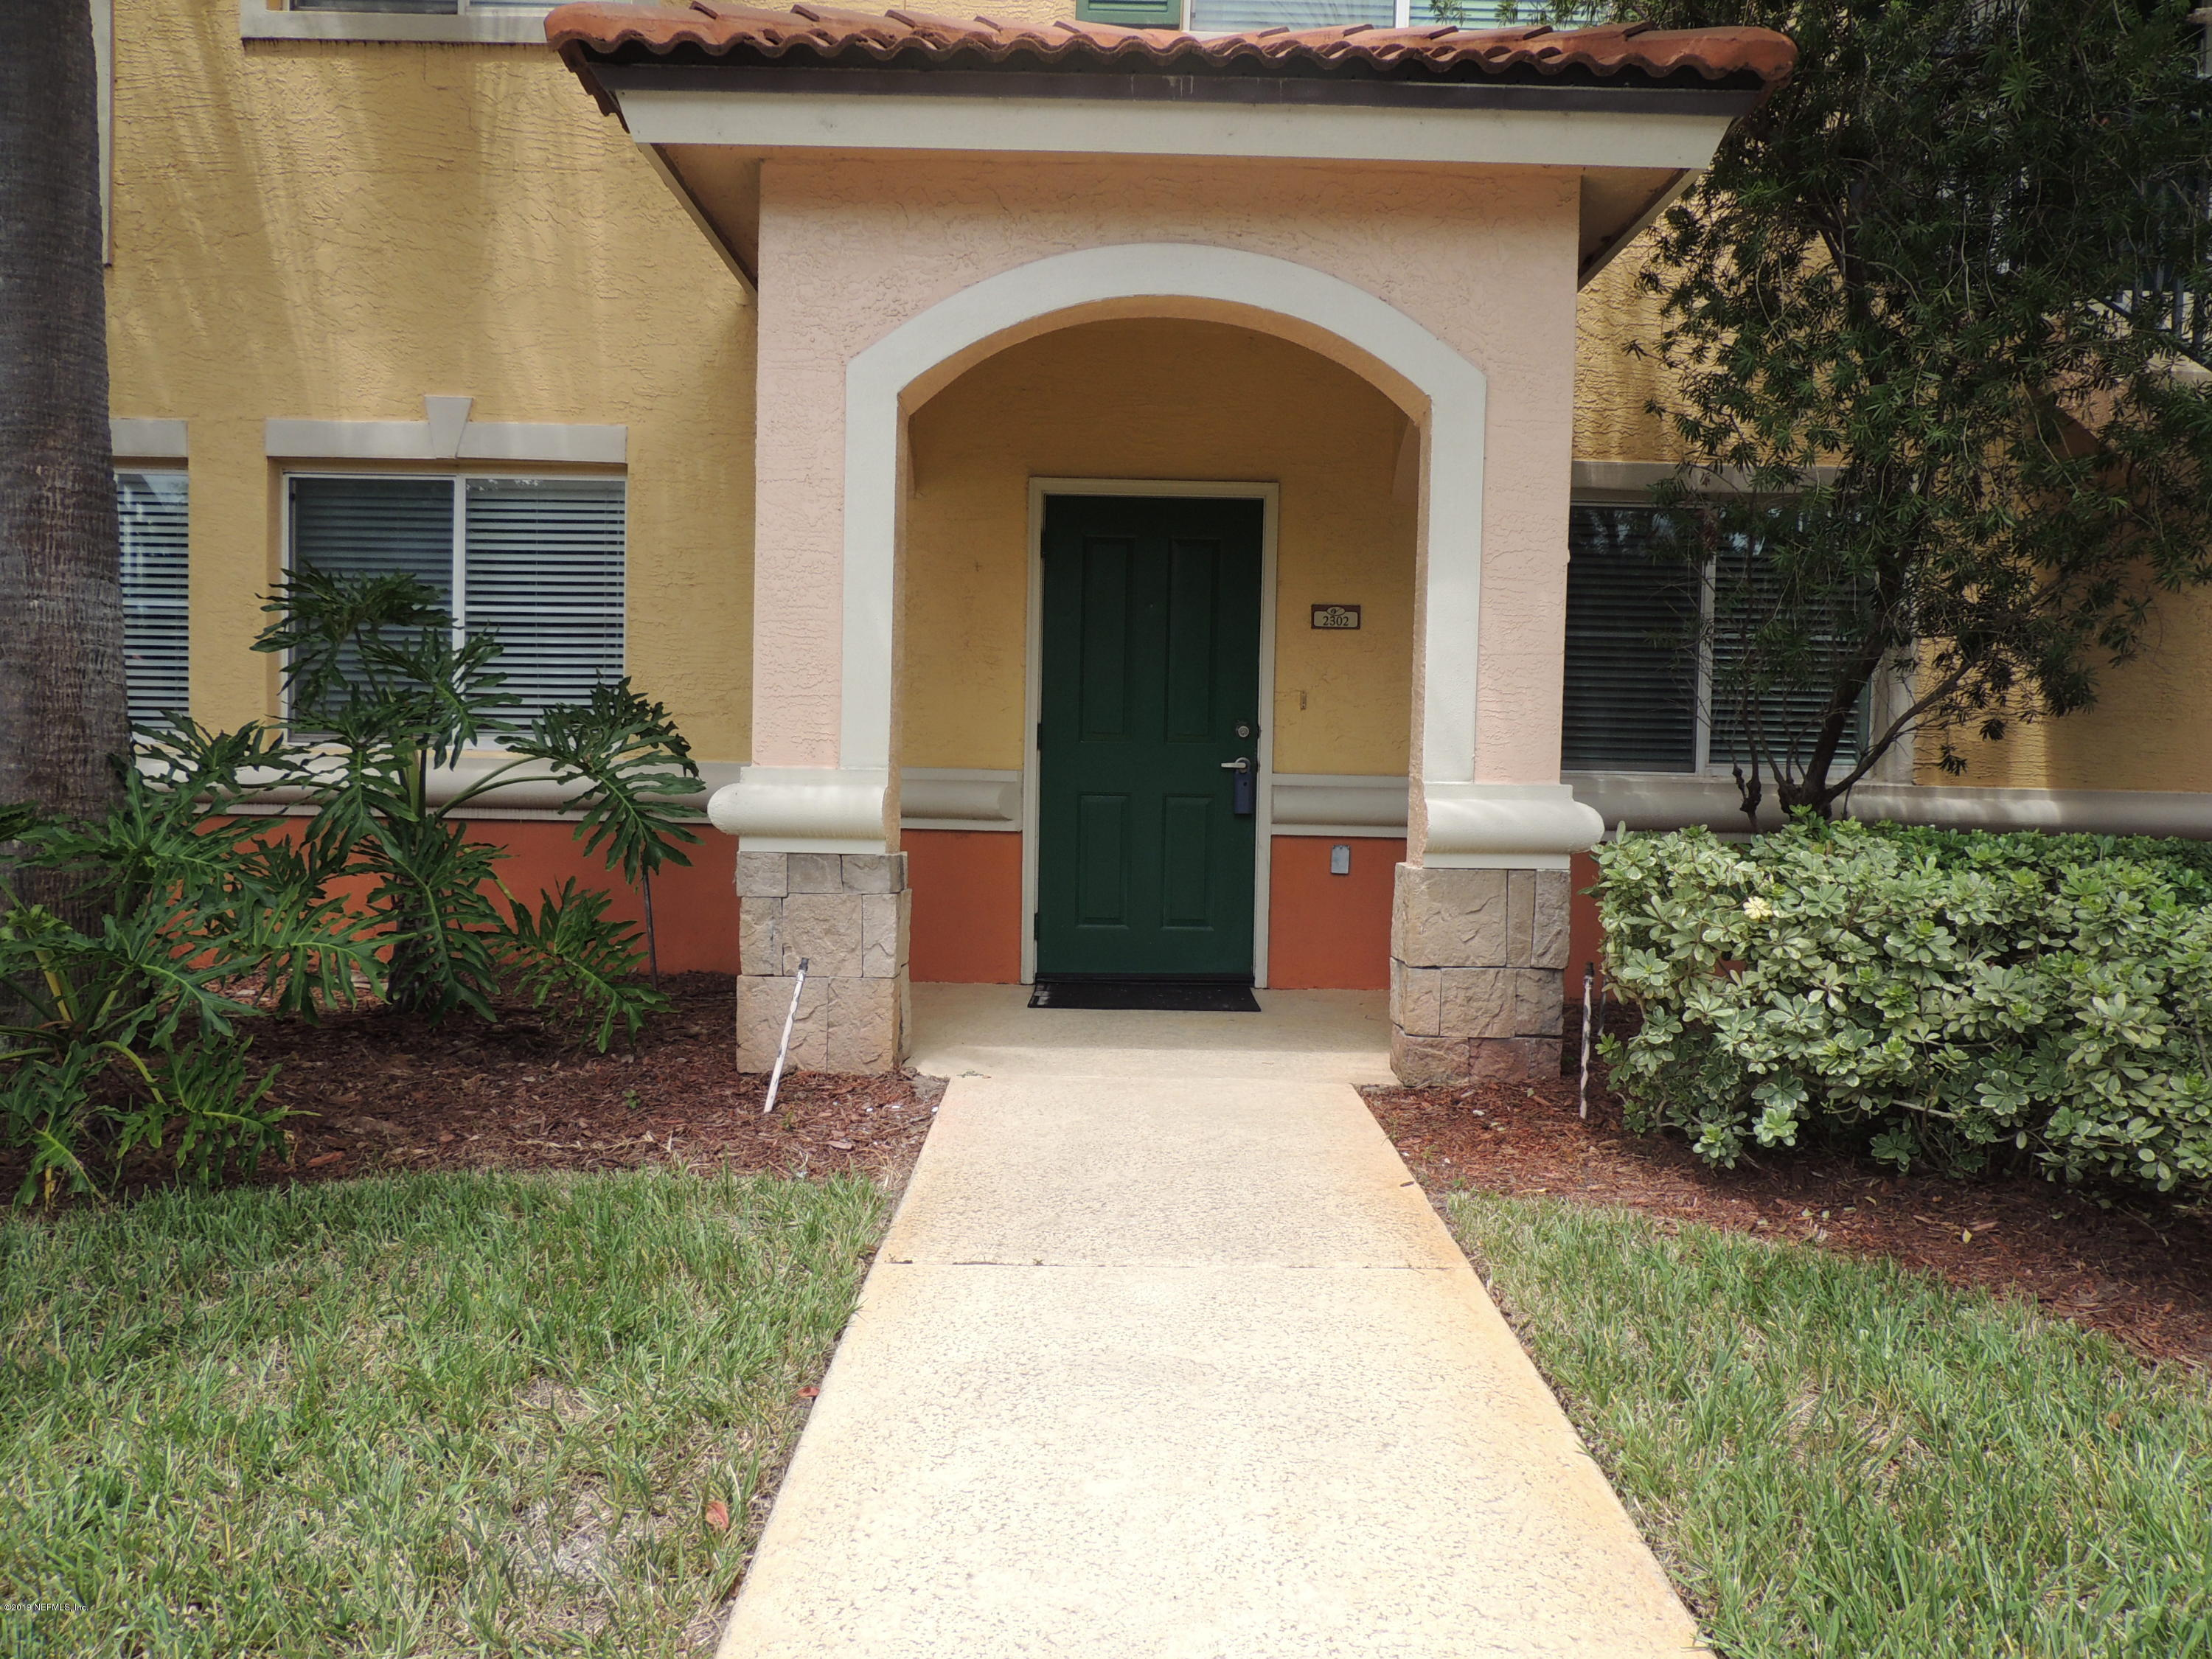 9745 TOUCHTON, JACKSONVILLE, FLORIDA 32246, 3 Bedrooms Bedrooms, ,2 BathroomsBathrooms,Condo,For sale,TOUCHTON,1012452